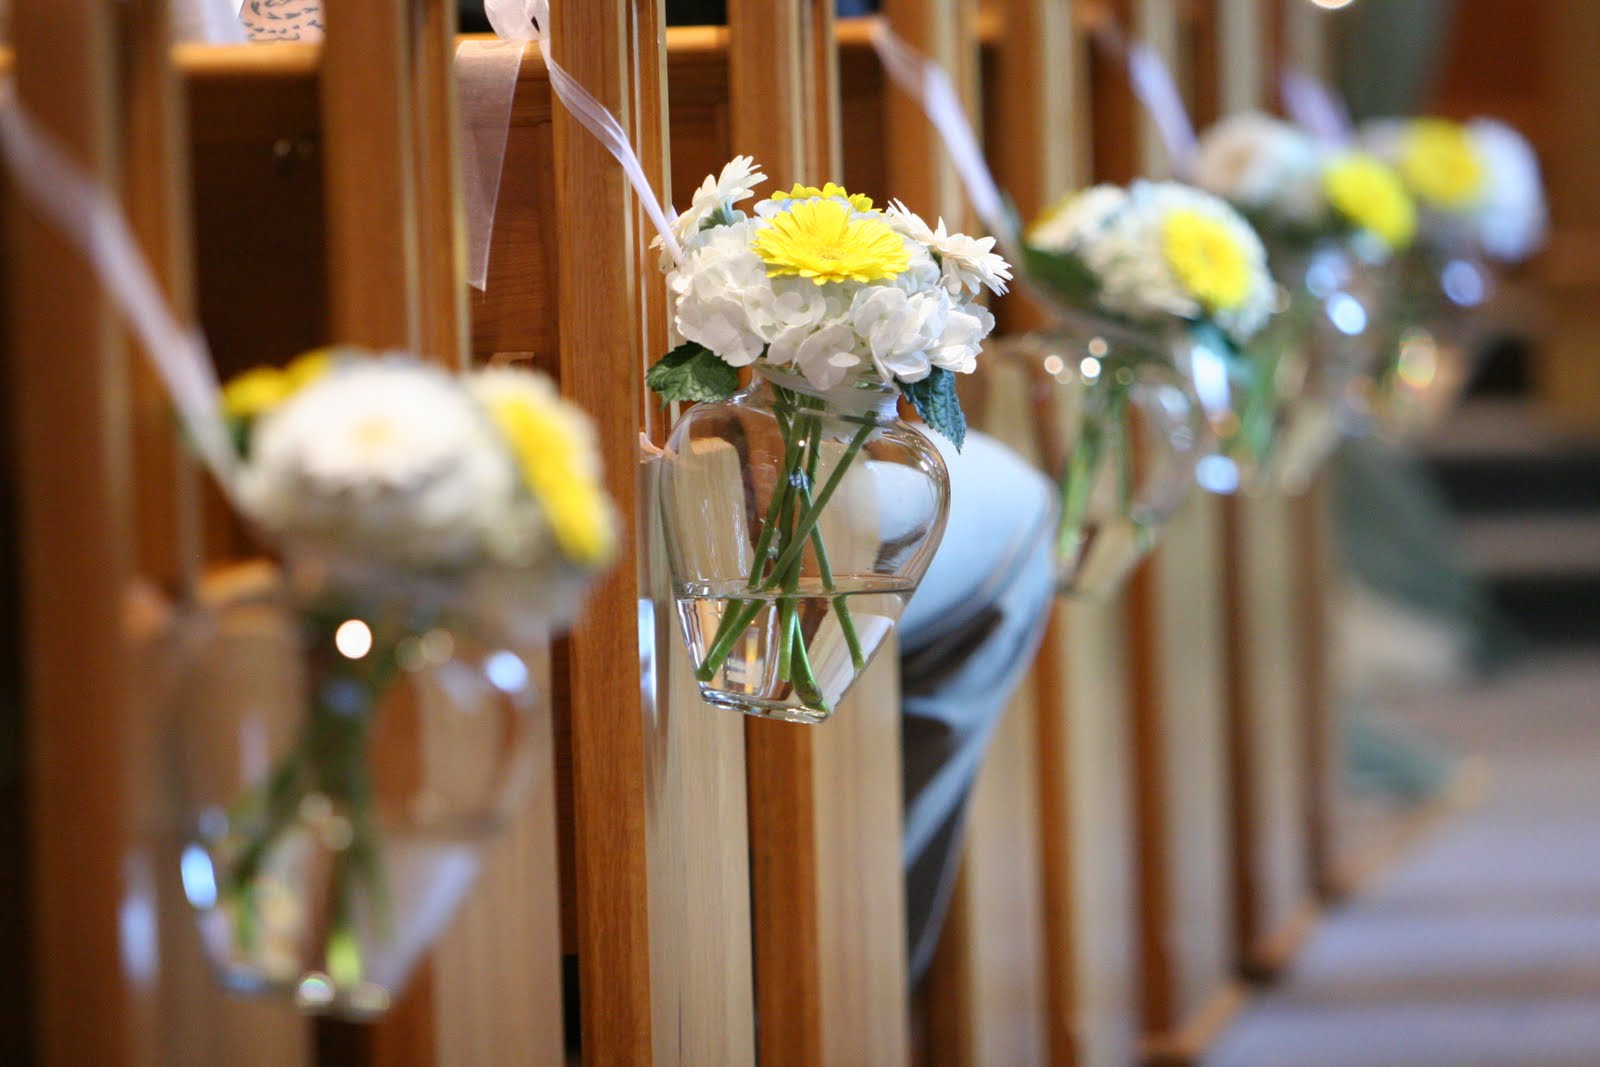 church flowers fall decorations weddings events decorating outdoor table flower summer special reception part pew delores simple decor march garden